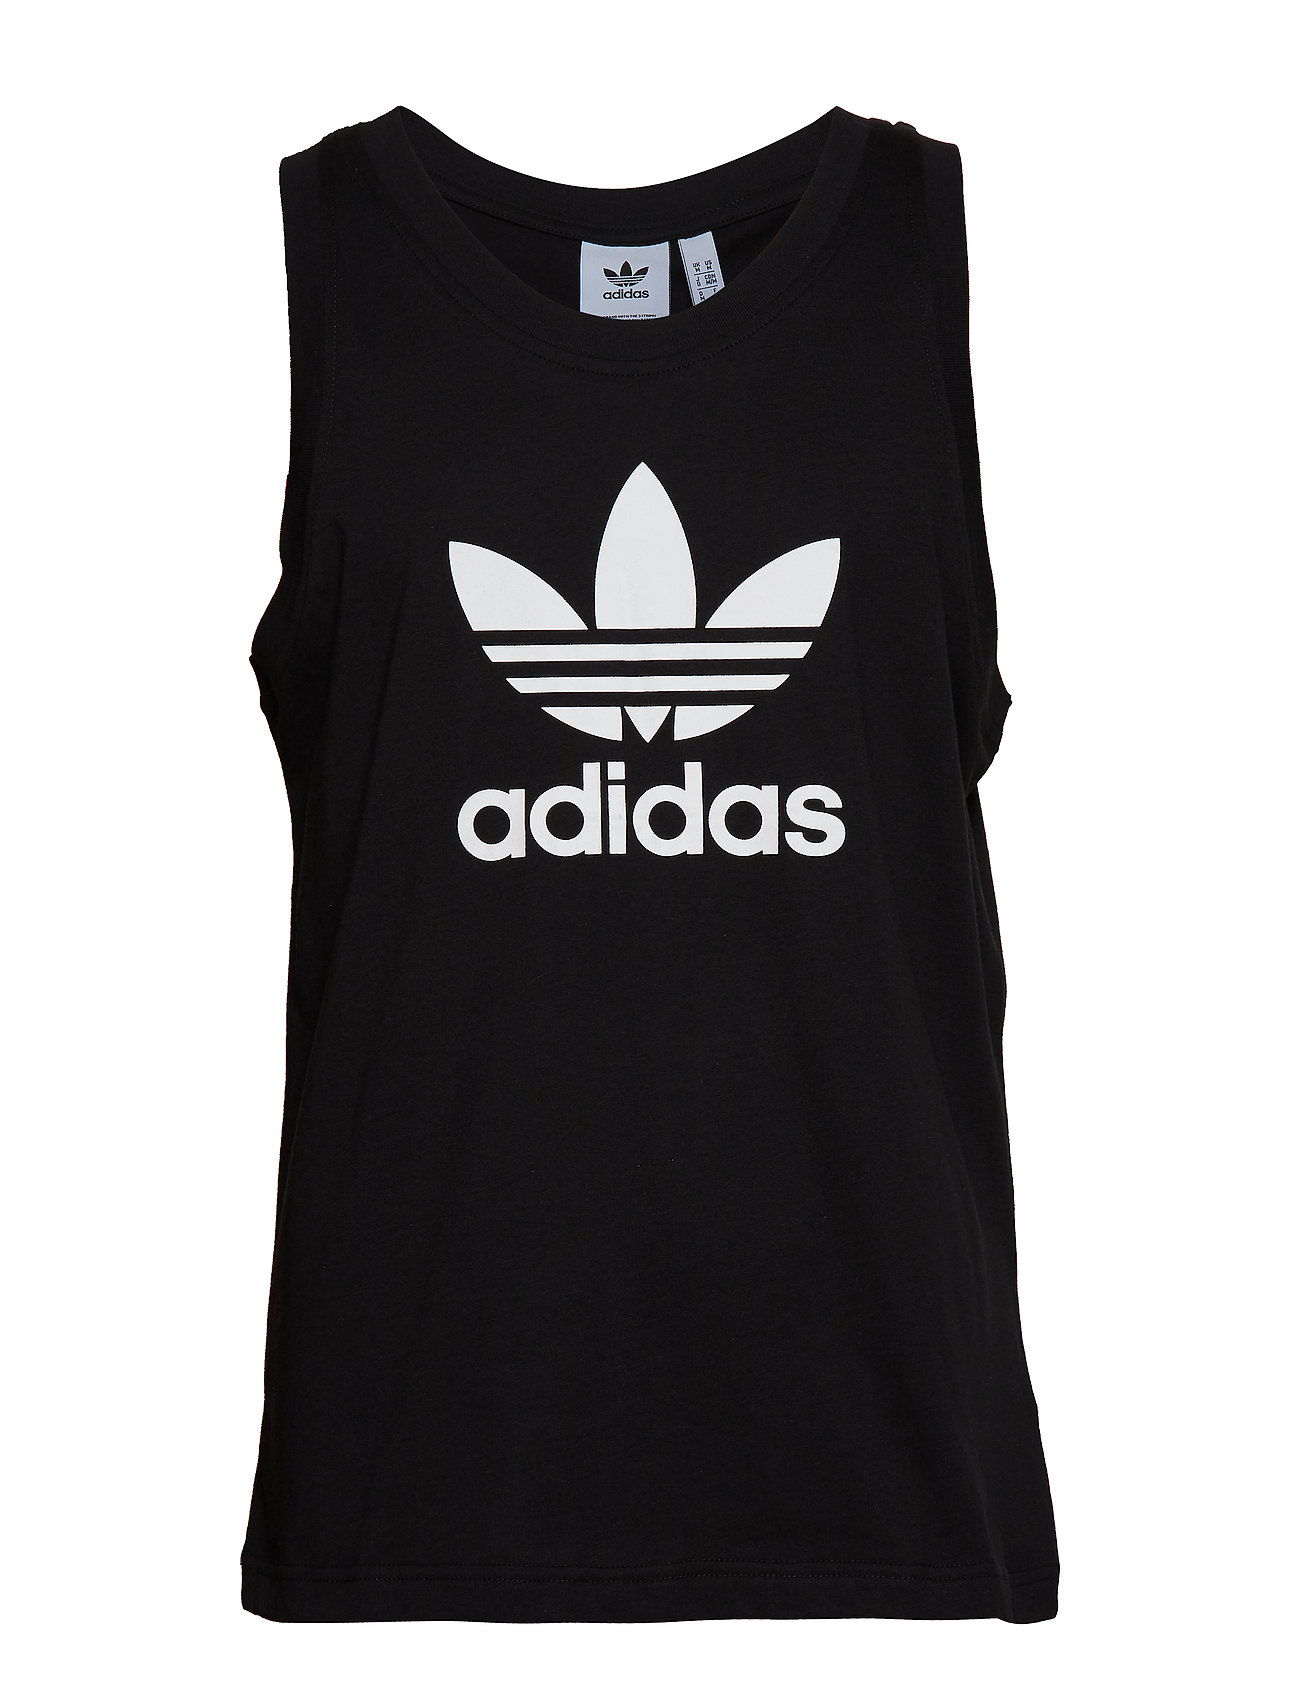 adidas Originals TREFOIL TANK - BLACK